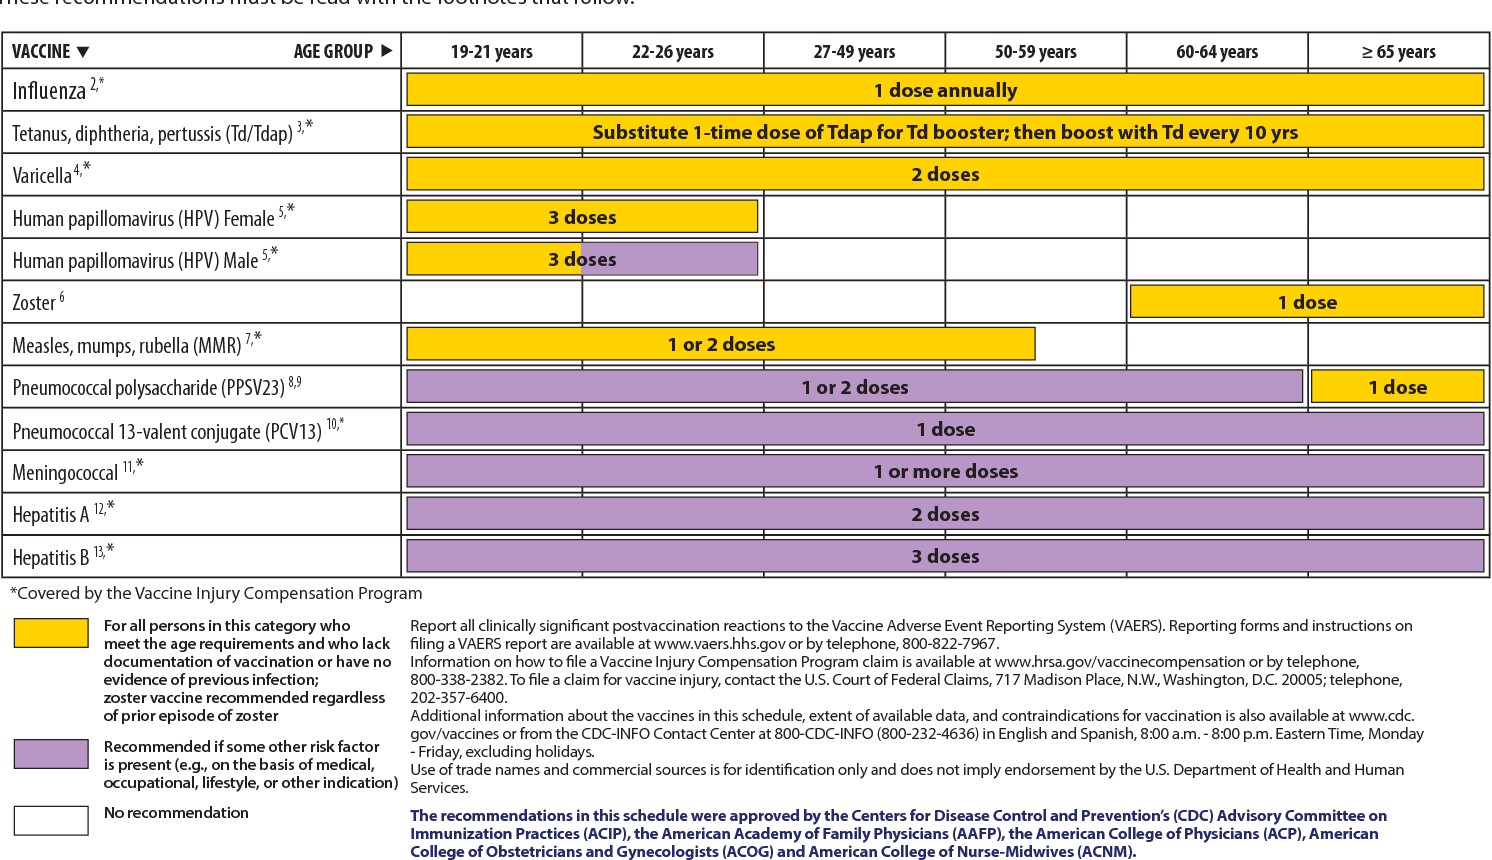 Recommended adult immunization schedule, by vaccine and age group1